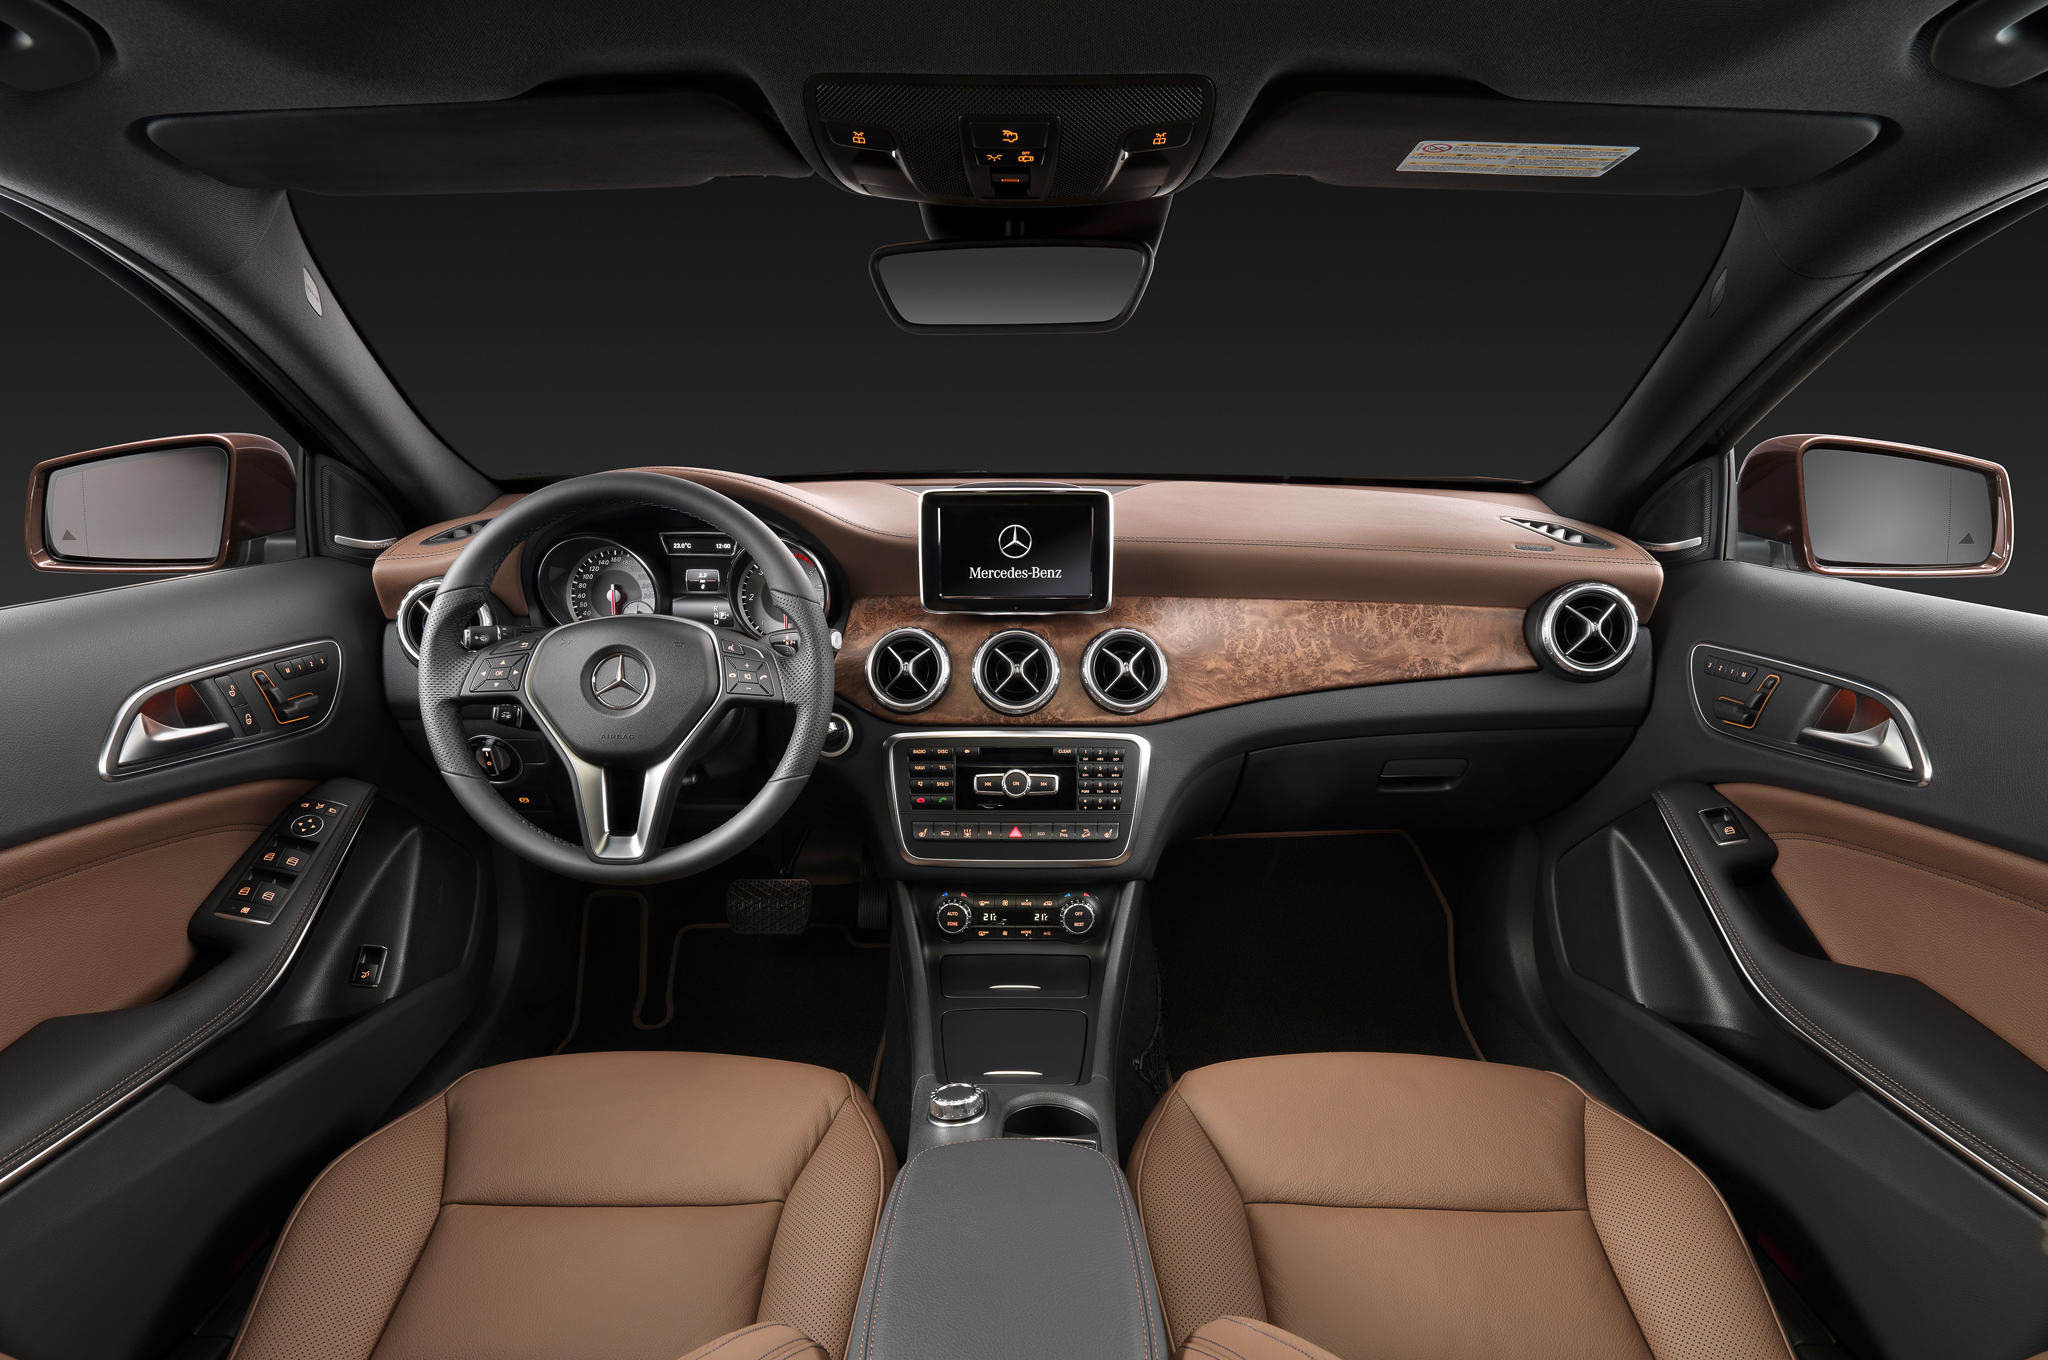 2015 Mercedes-Benz GLA-Class Luxury Dashboard and Cockpit